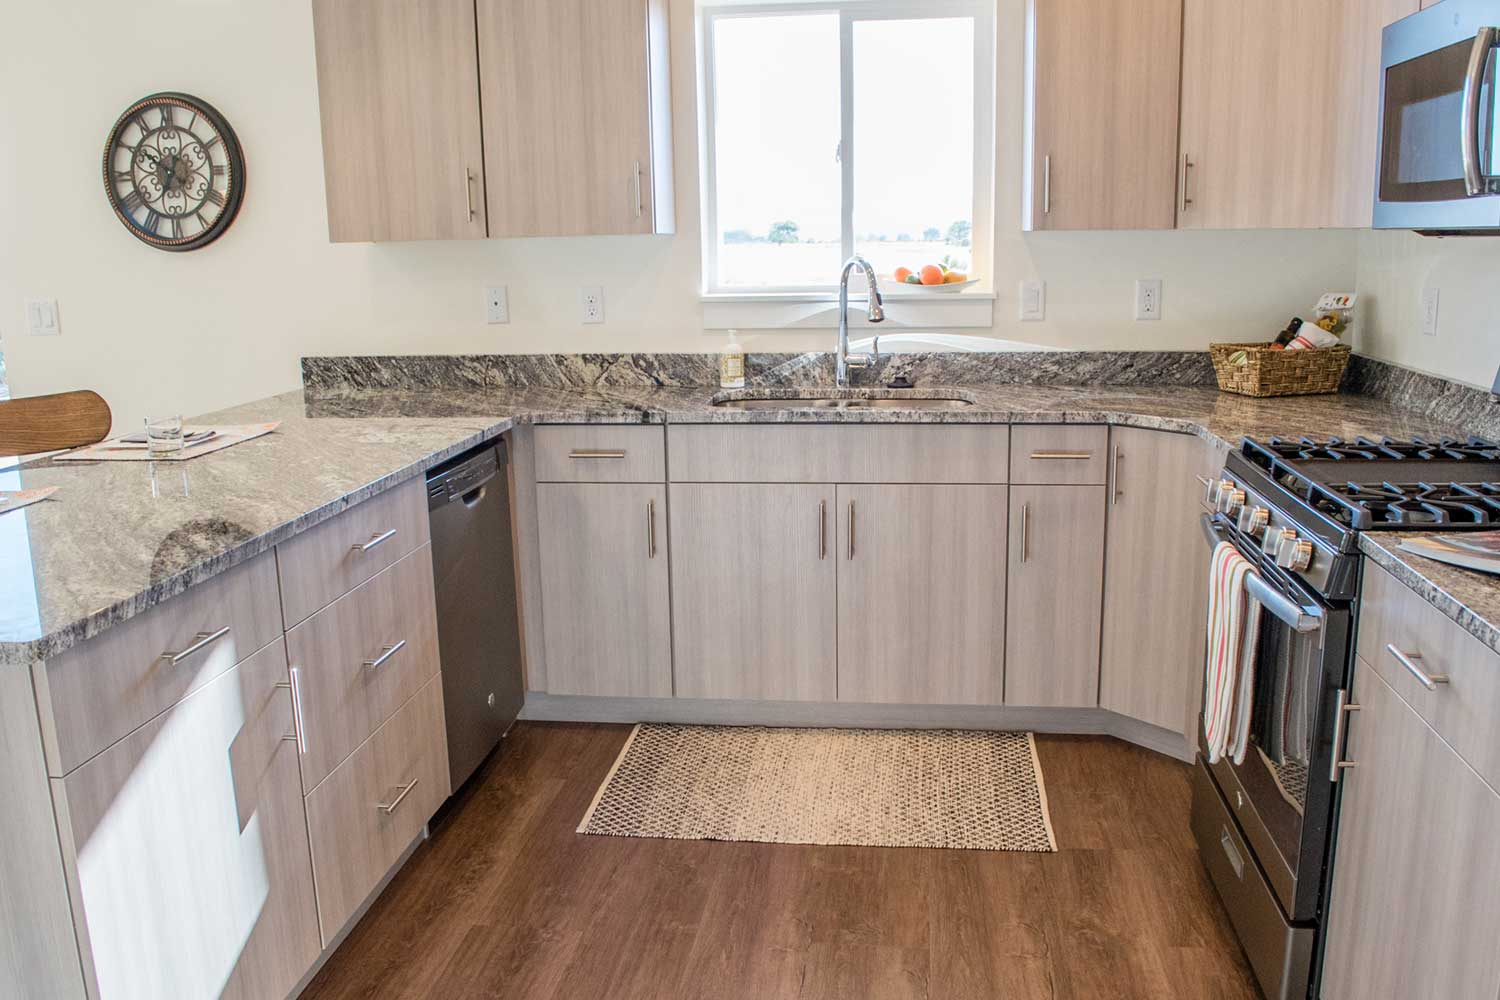 kitchen sink, granite counter tops, and light brown cabinets